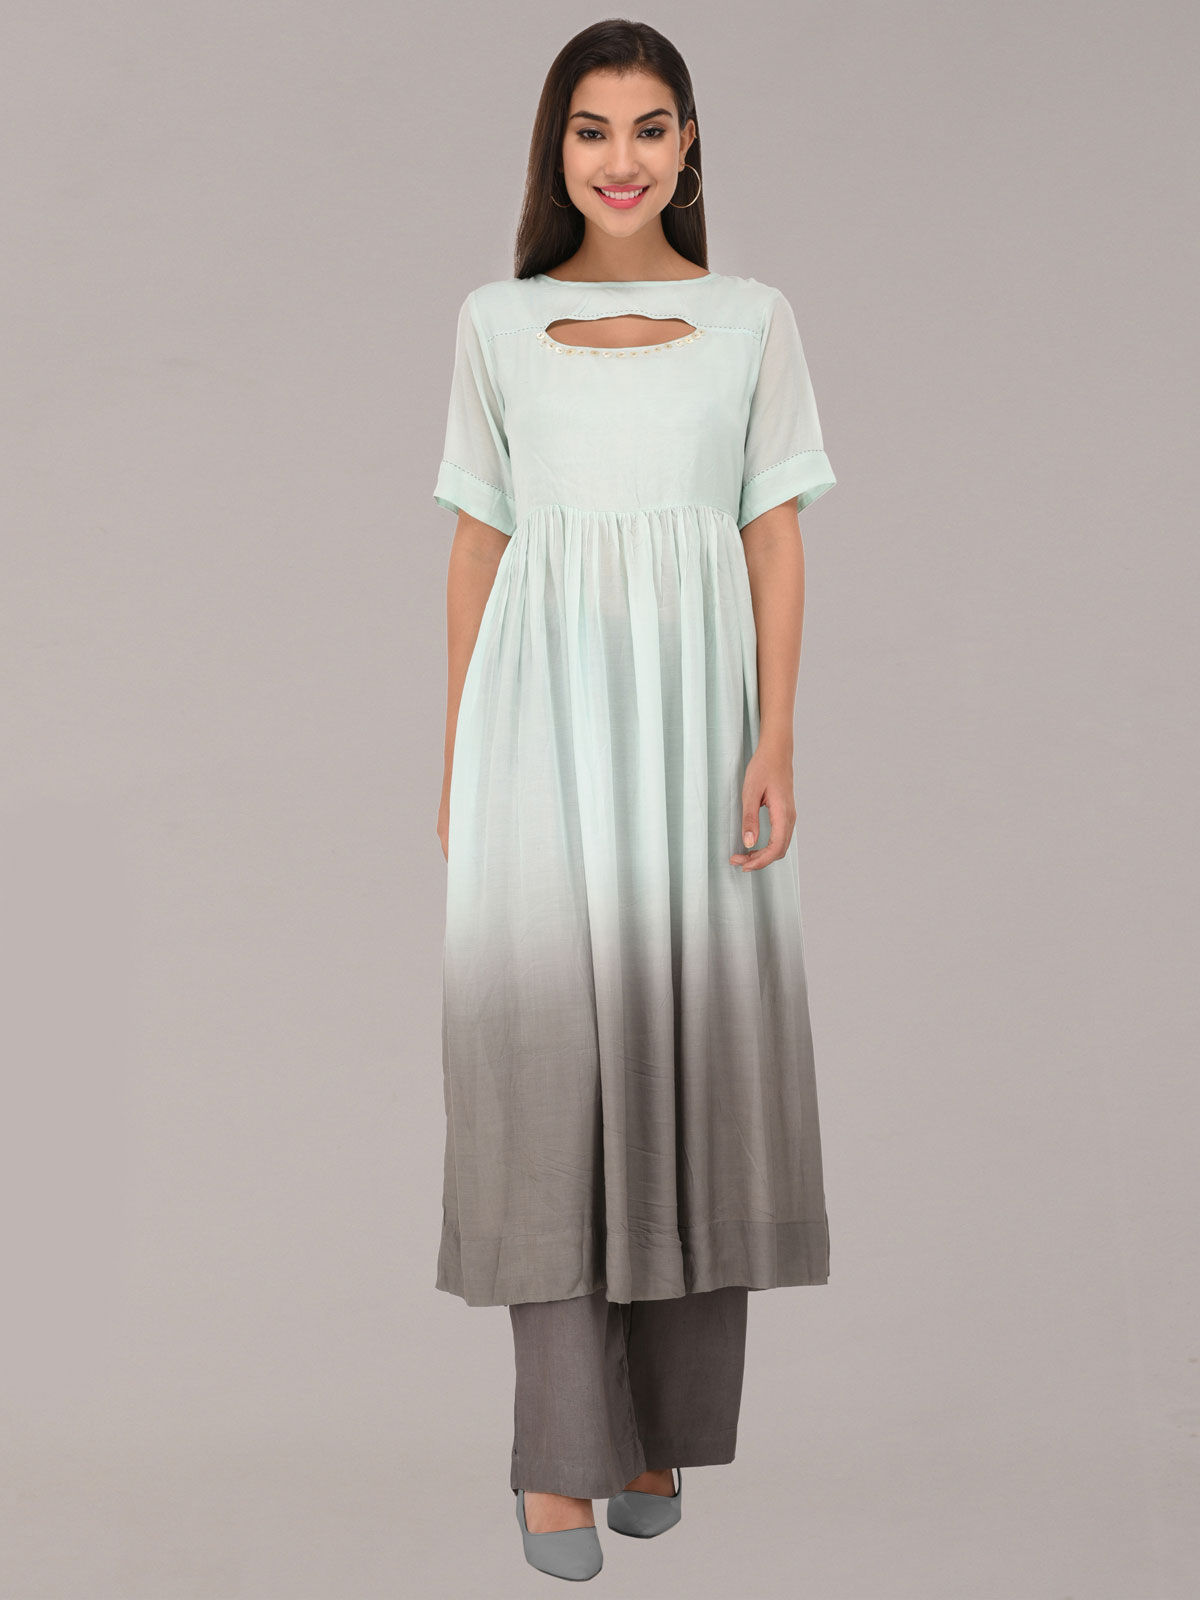 Modal ombre pastel turq & grey tunic with bottom